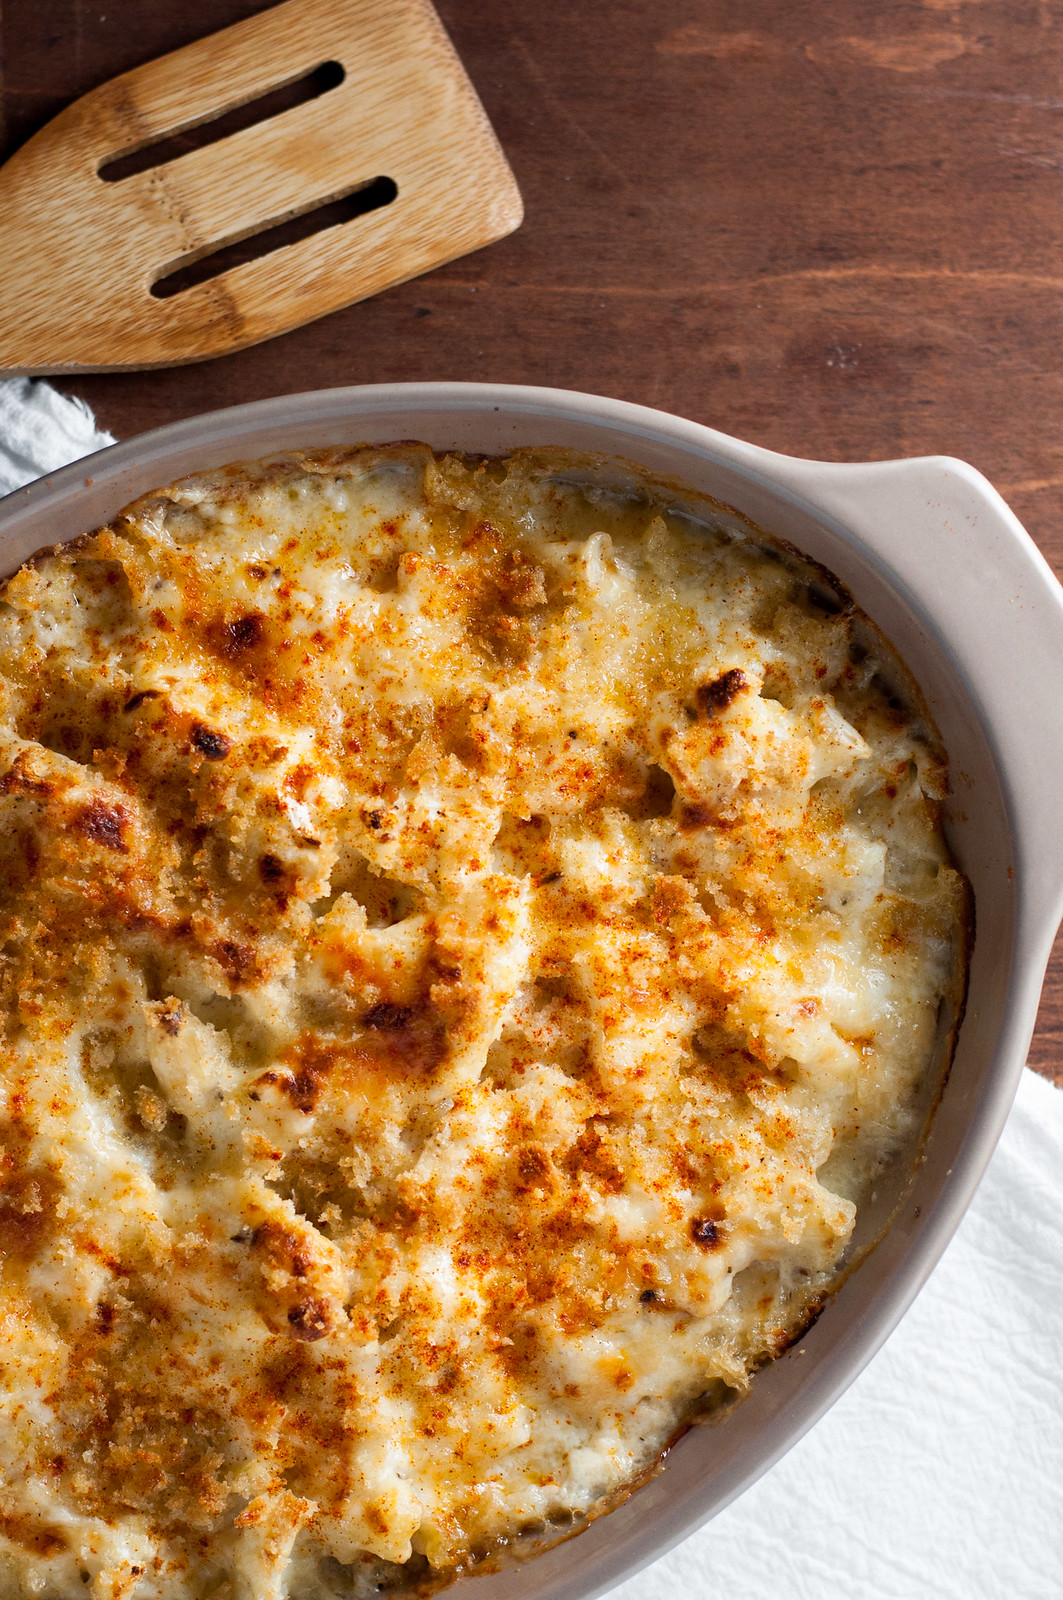 Roasted Garlic And Cheddar Cauliflower Gratin Recipes — Dishmaps